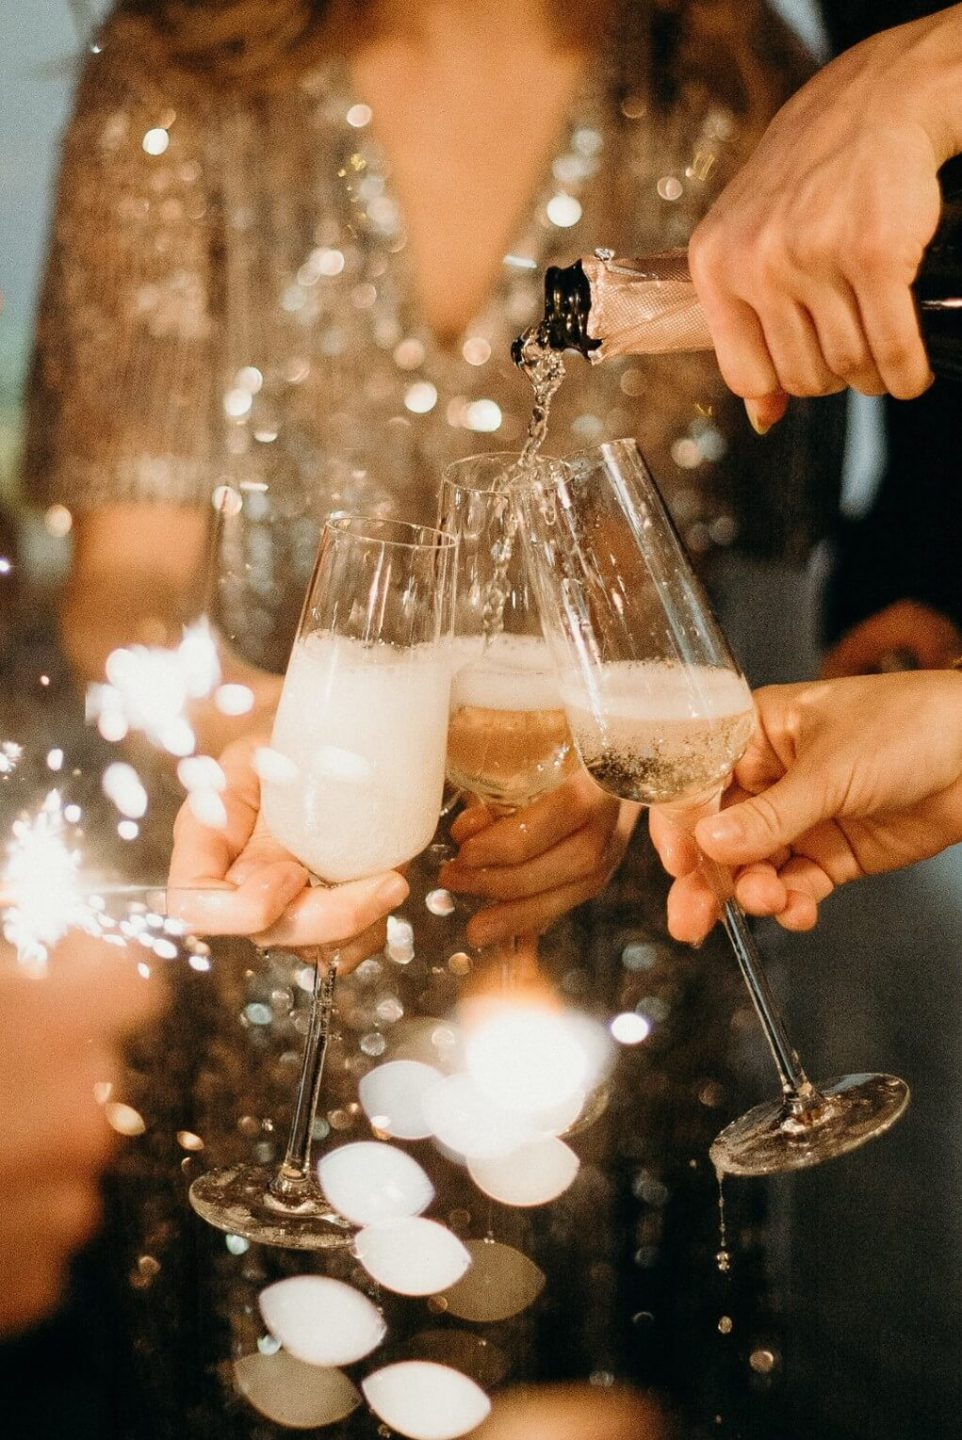 A close-up photo of people holding Champagne flutes